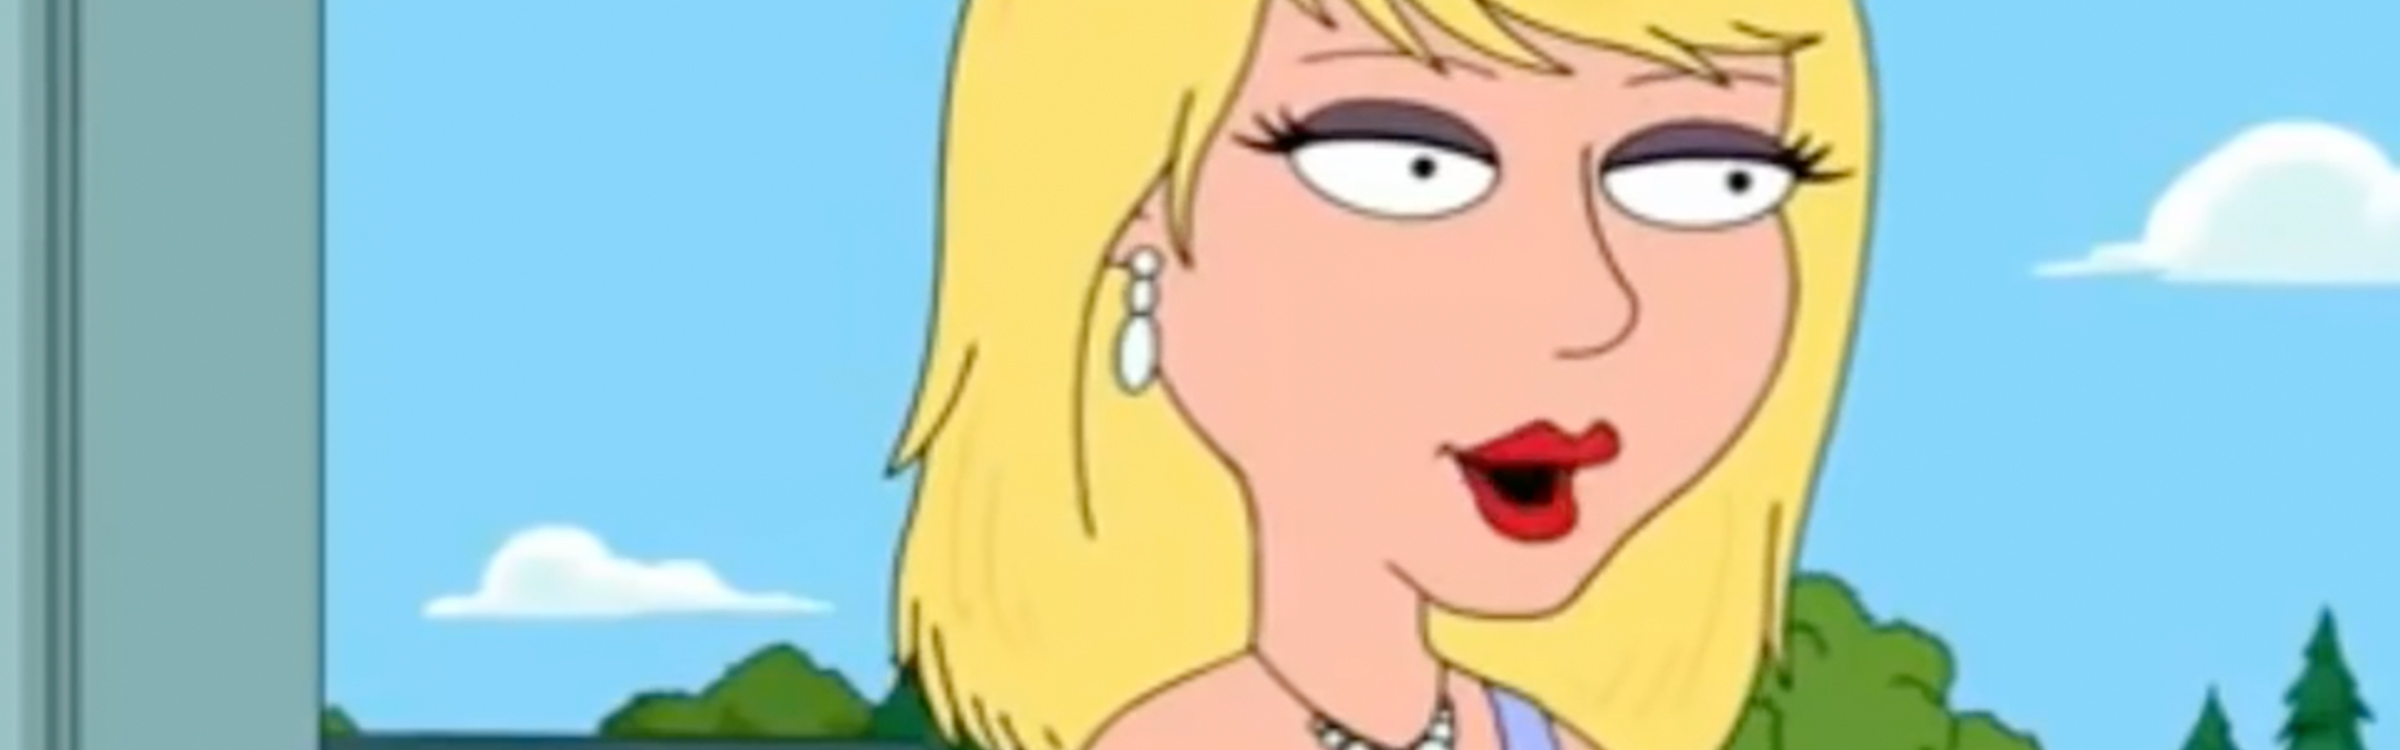 Header taylor swift family guy